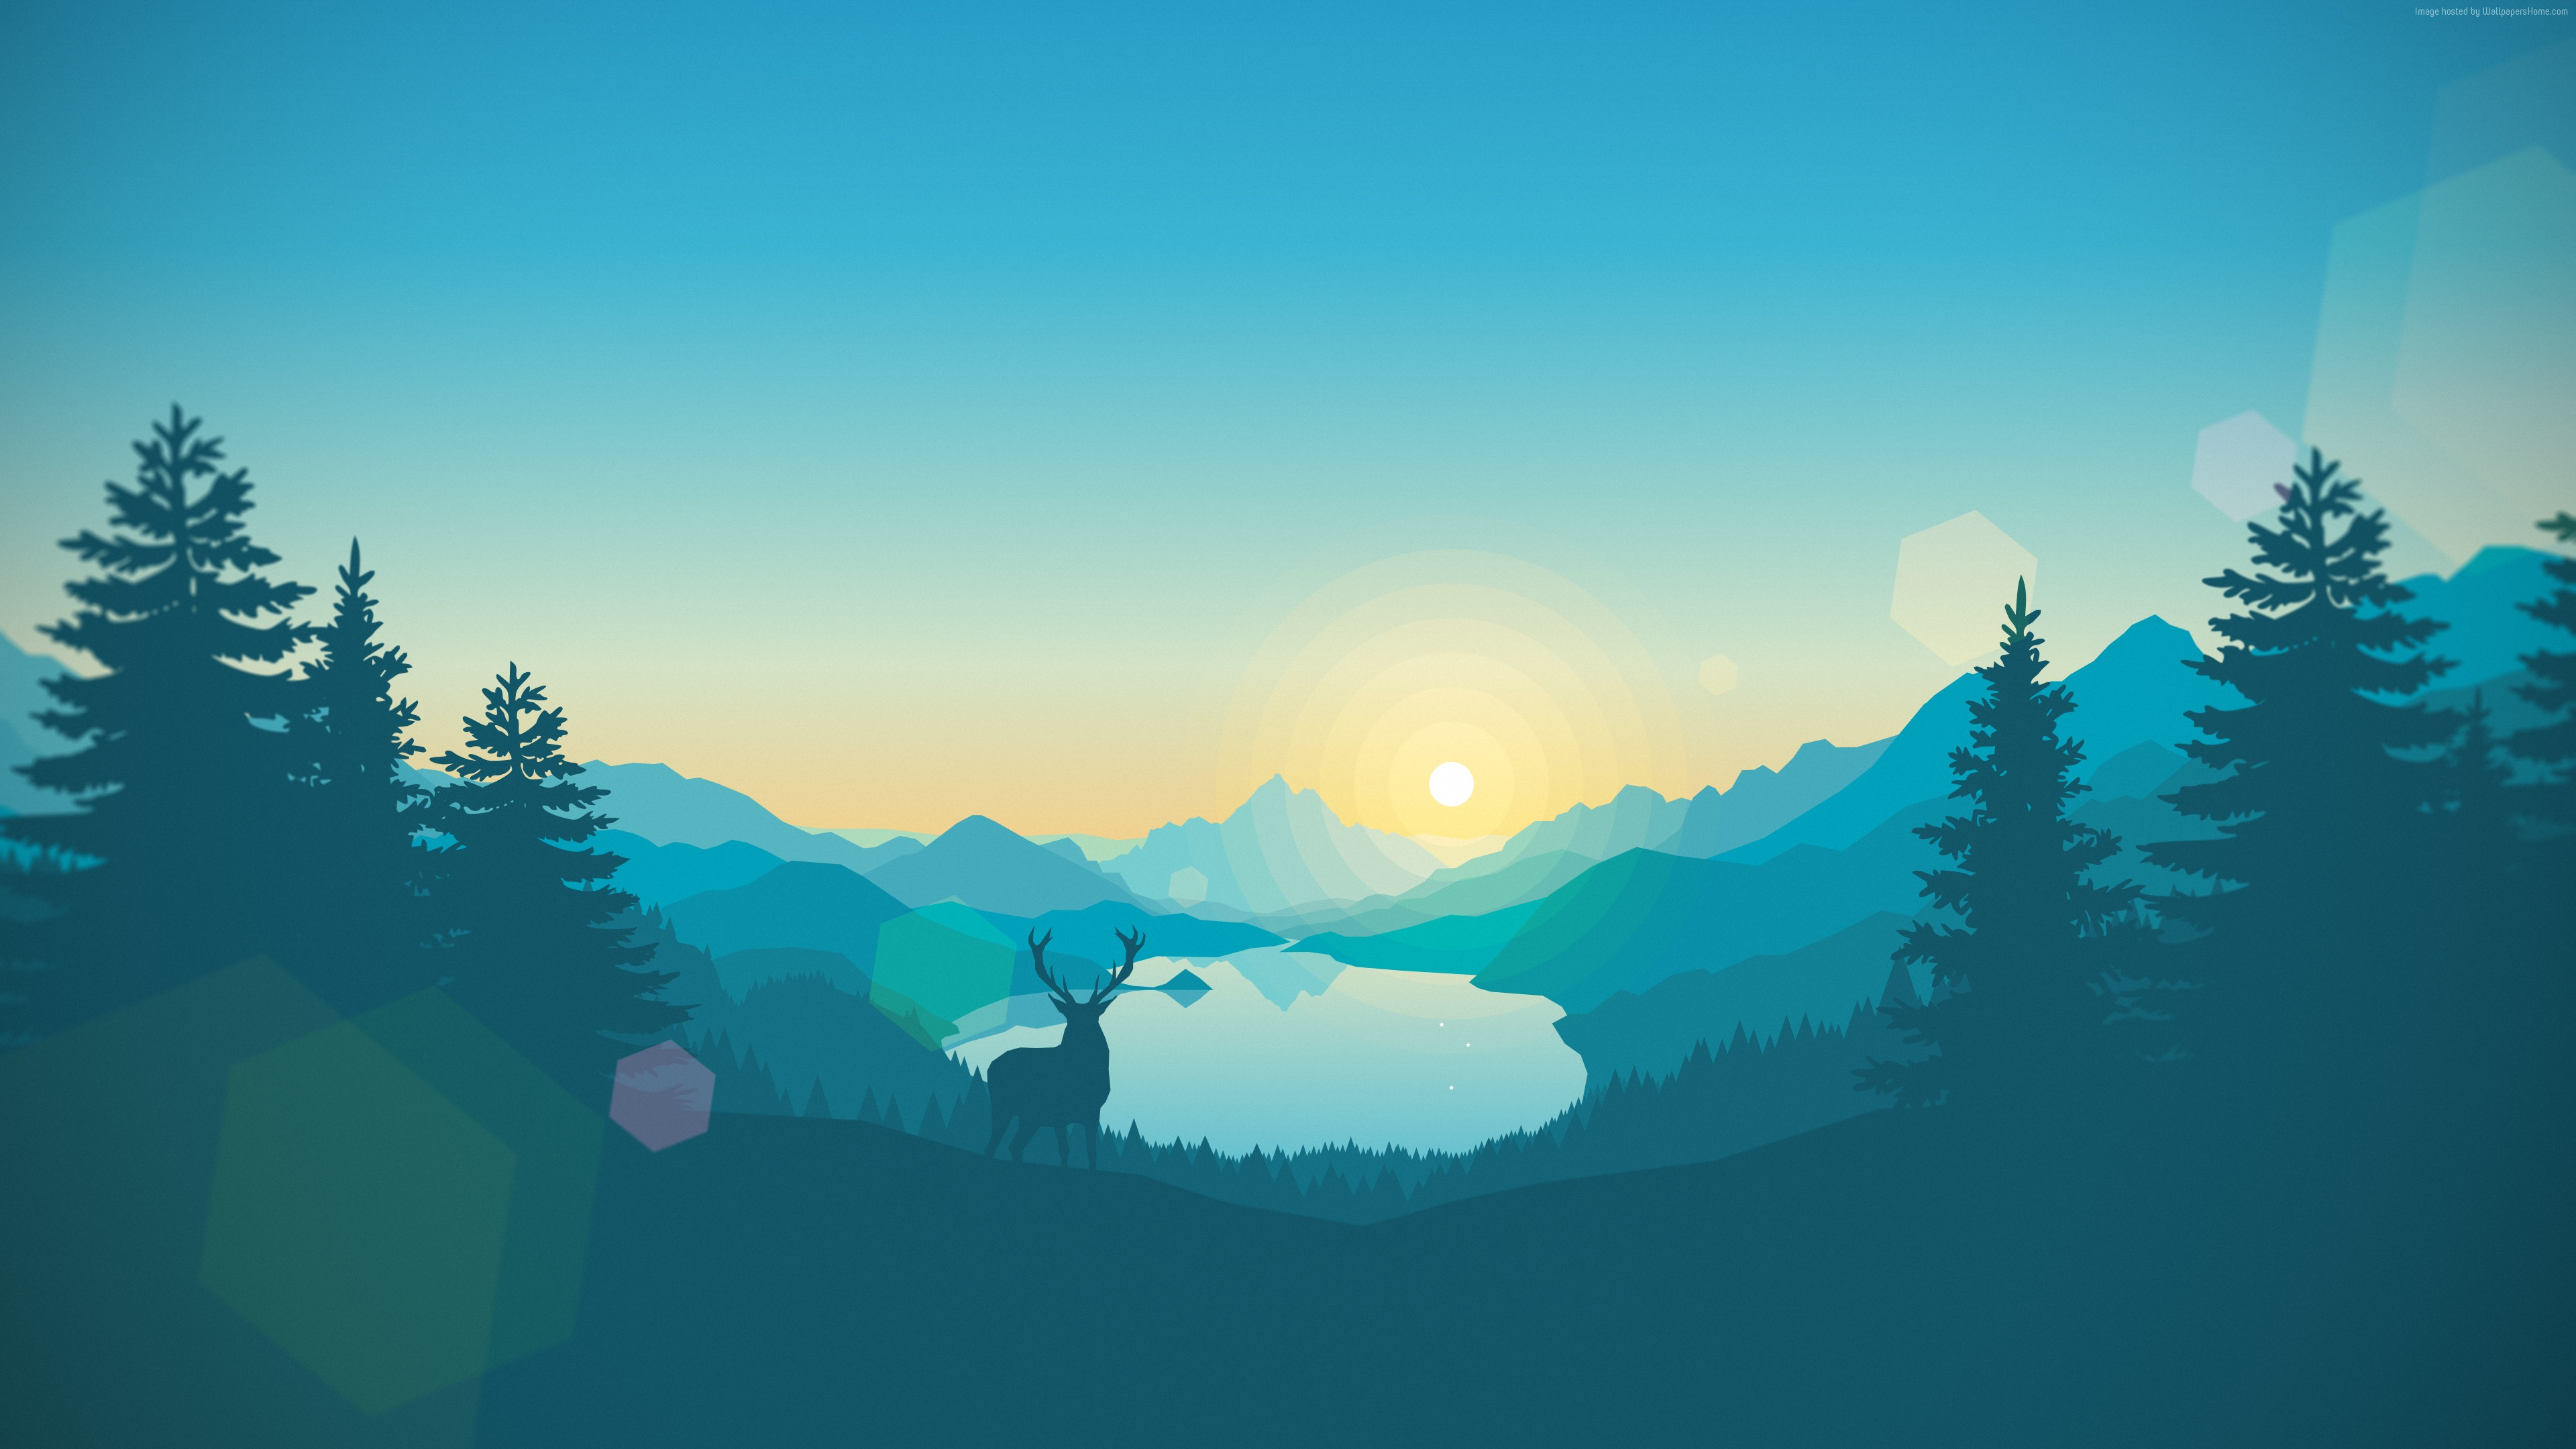 firewatch-3840x2160-best-games-game-quest-horror-pc-ps4-8462.jpg